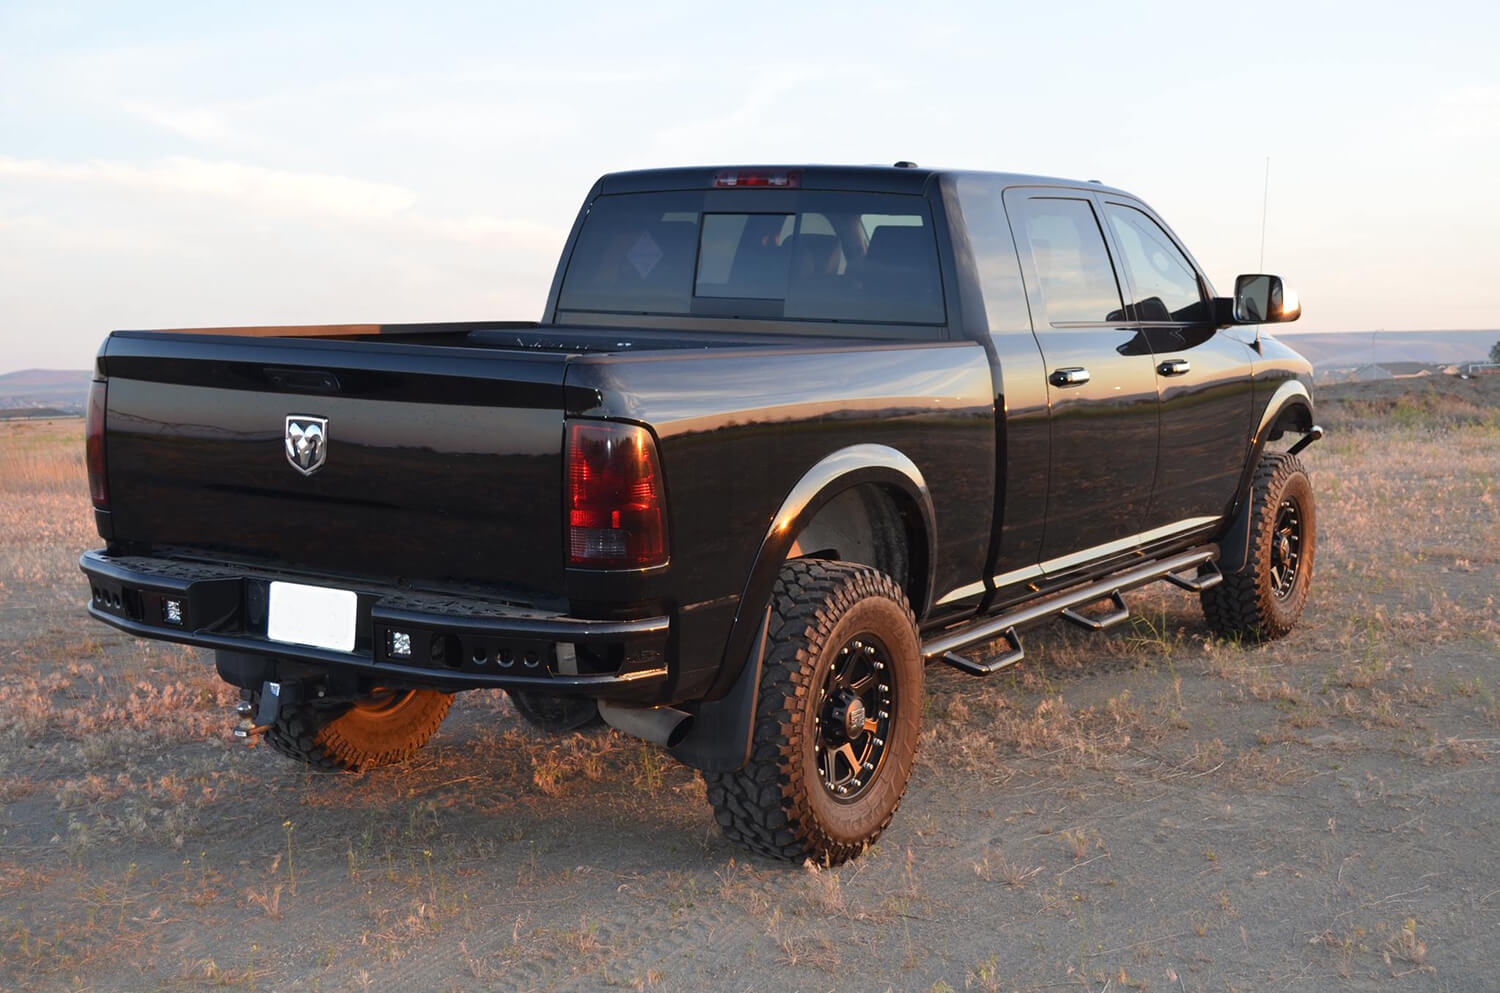 Addictive Desert Design Dimple R Rear Bumper Dodge RAM 2500 03-09